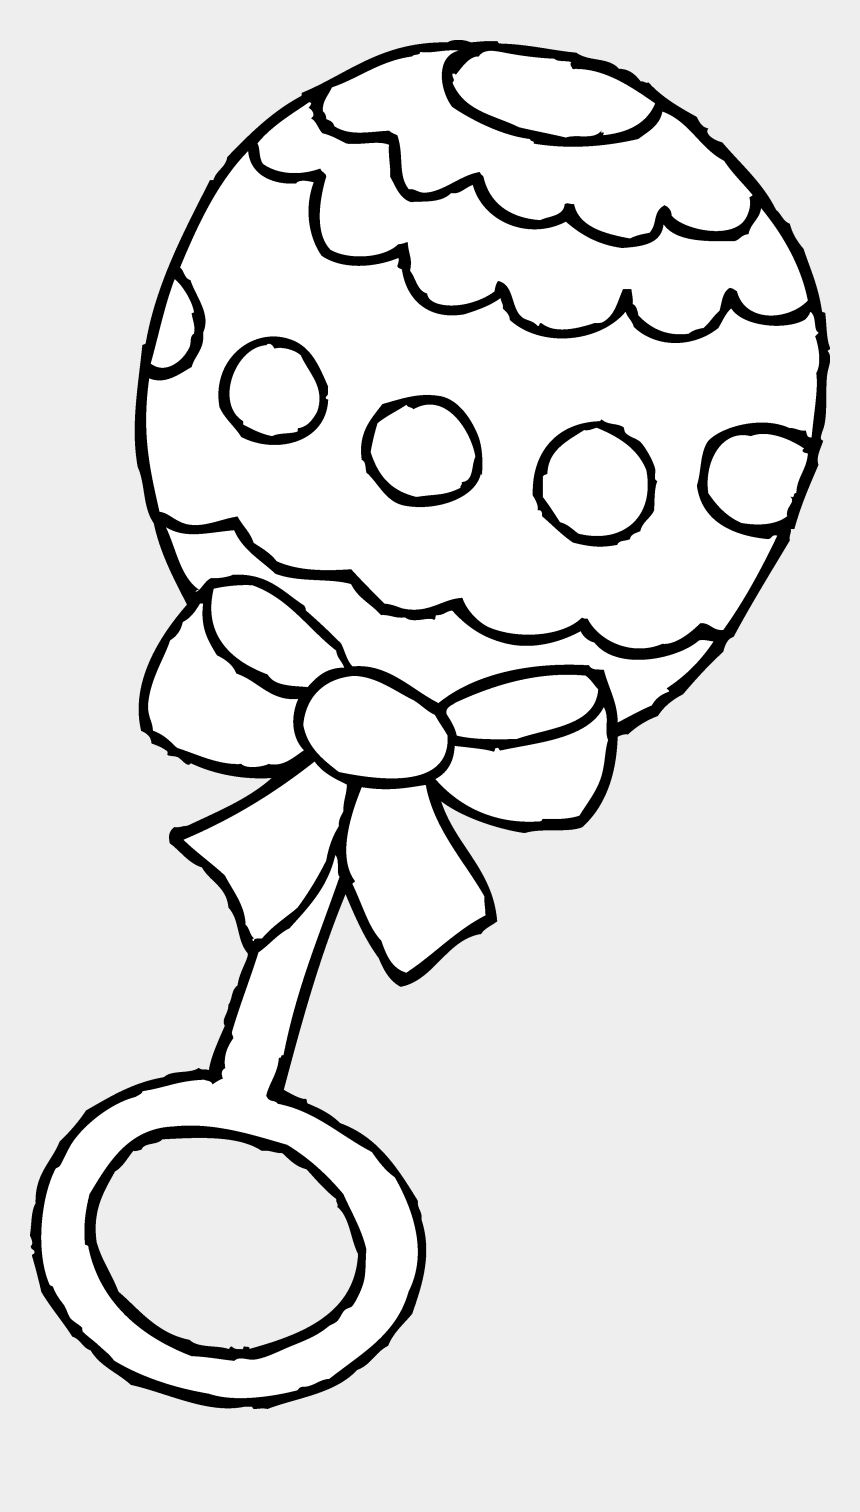 Toy Clipart Black And White Images In 2021 Coloring Pages Baby Coloring Pages Space Coloring Pages